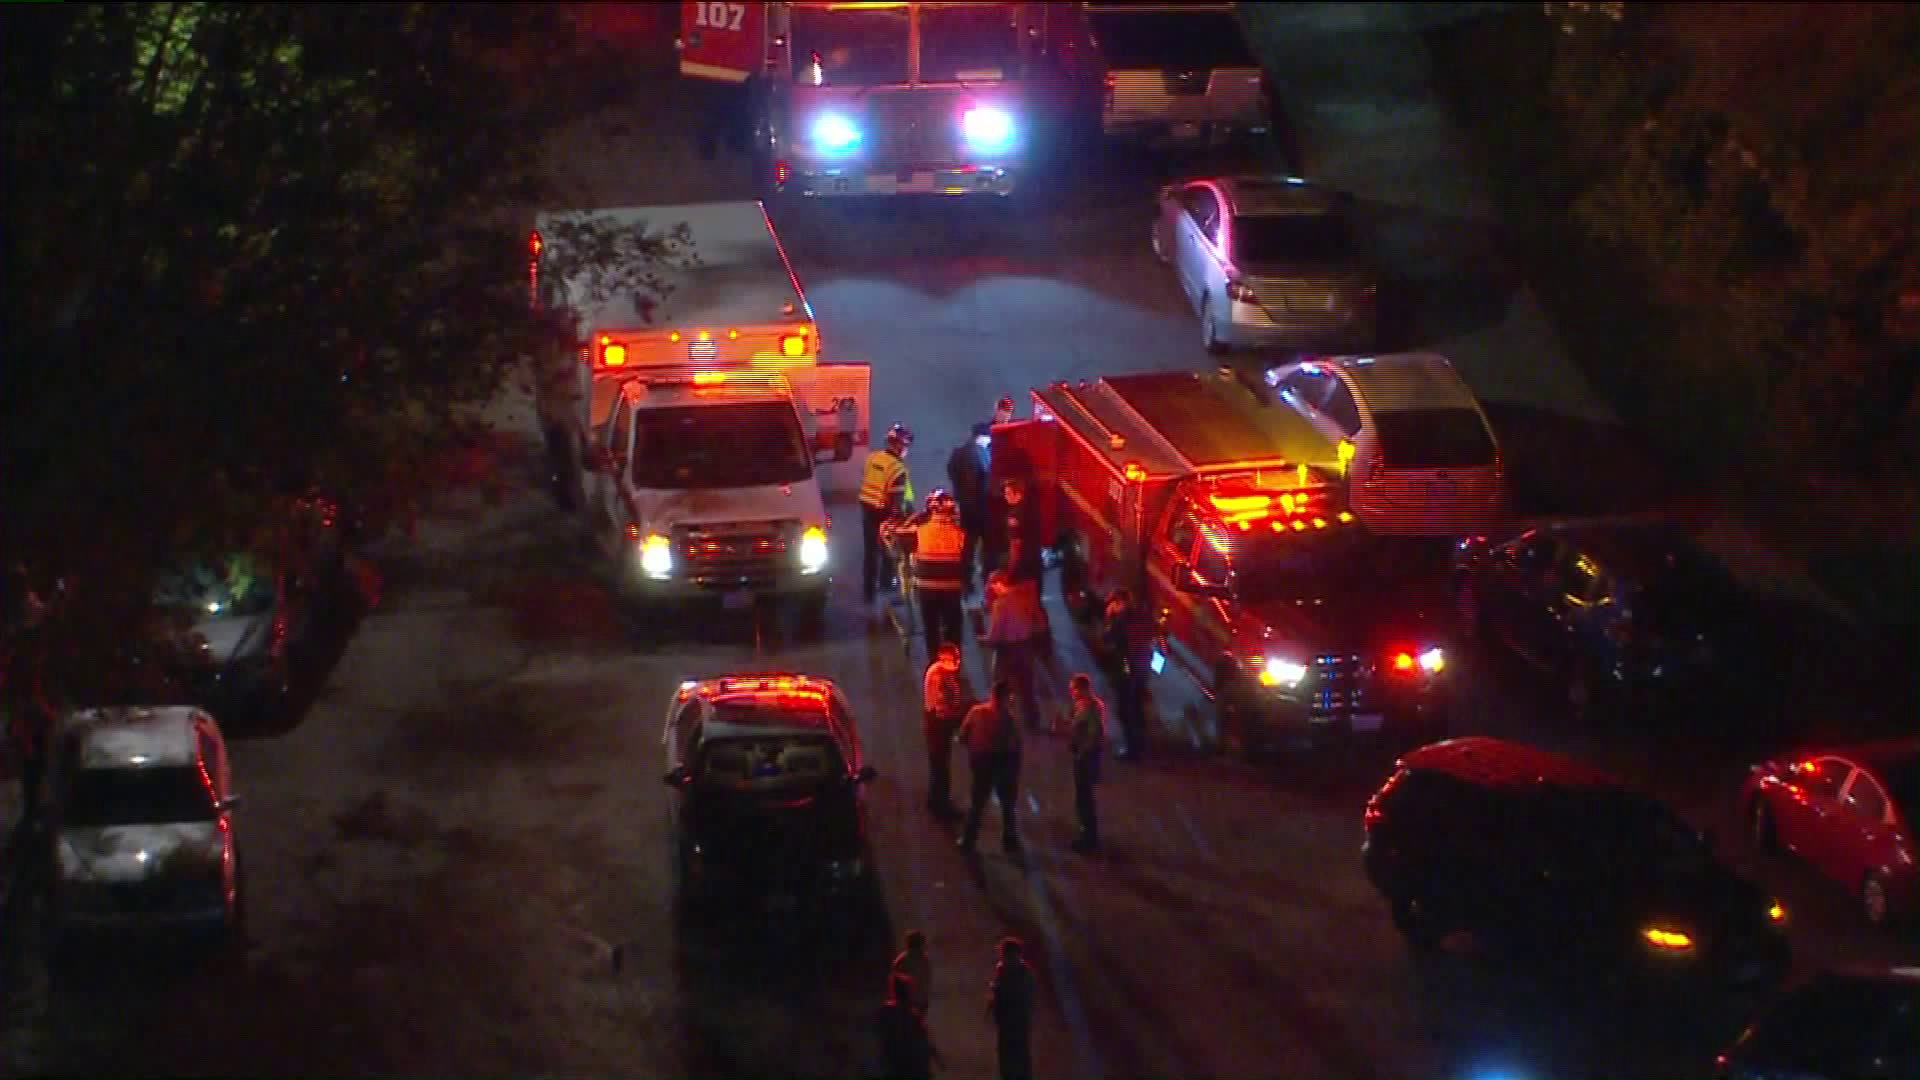 Authorities investigate the scene in Santa Clarita where a Los Angeles County Sheriff's Department deputy was injured in a hit-and-run on June 11, 2020. (KTLA)